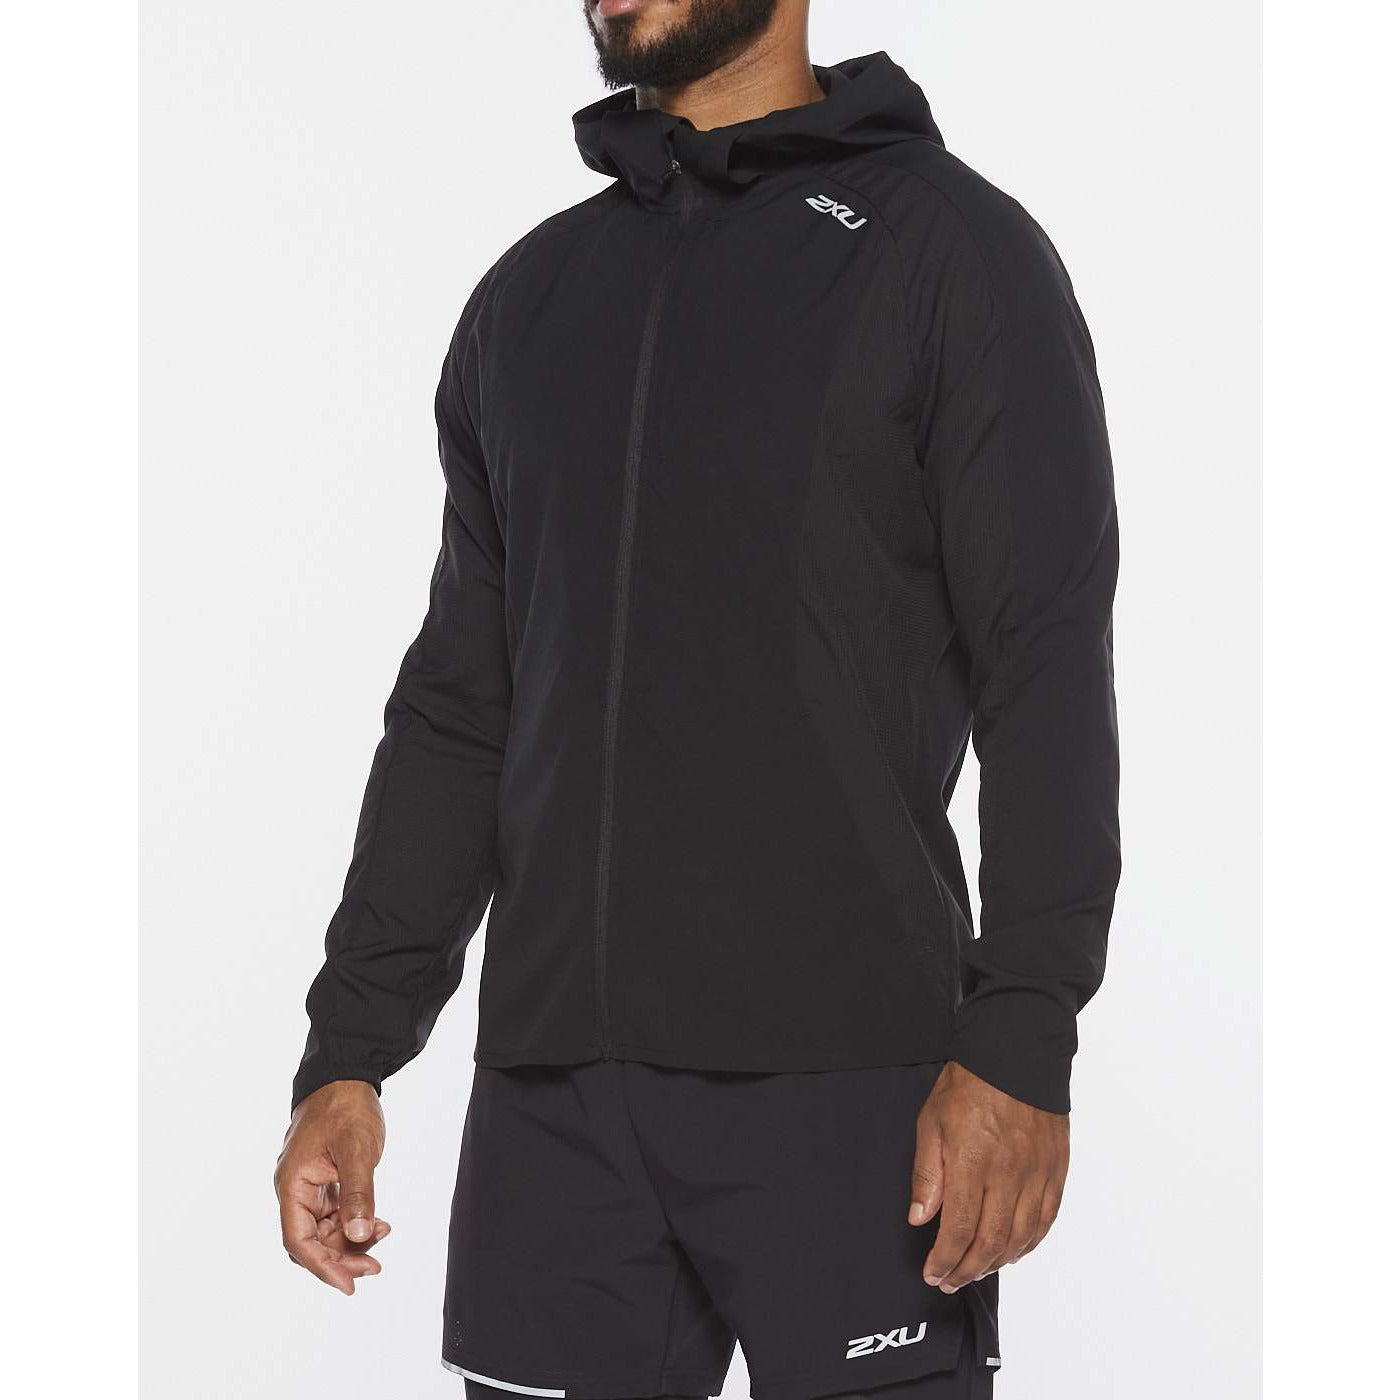 2XU Mens XVENT Jacket - Sole Motive